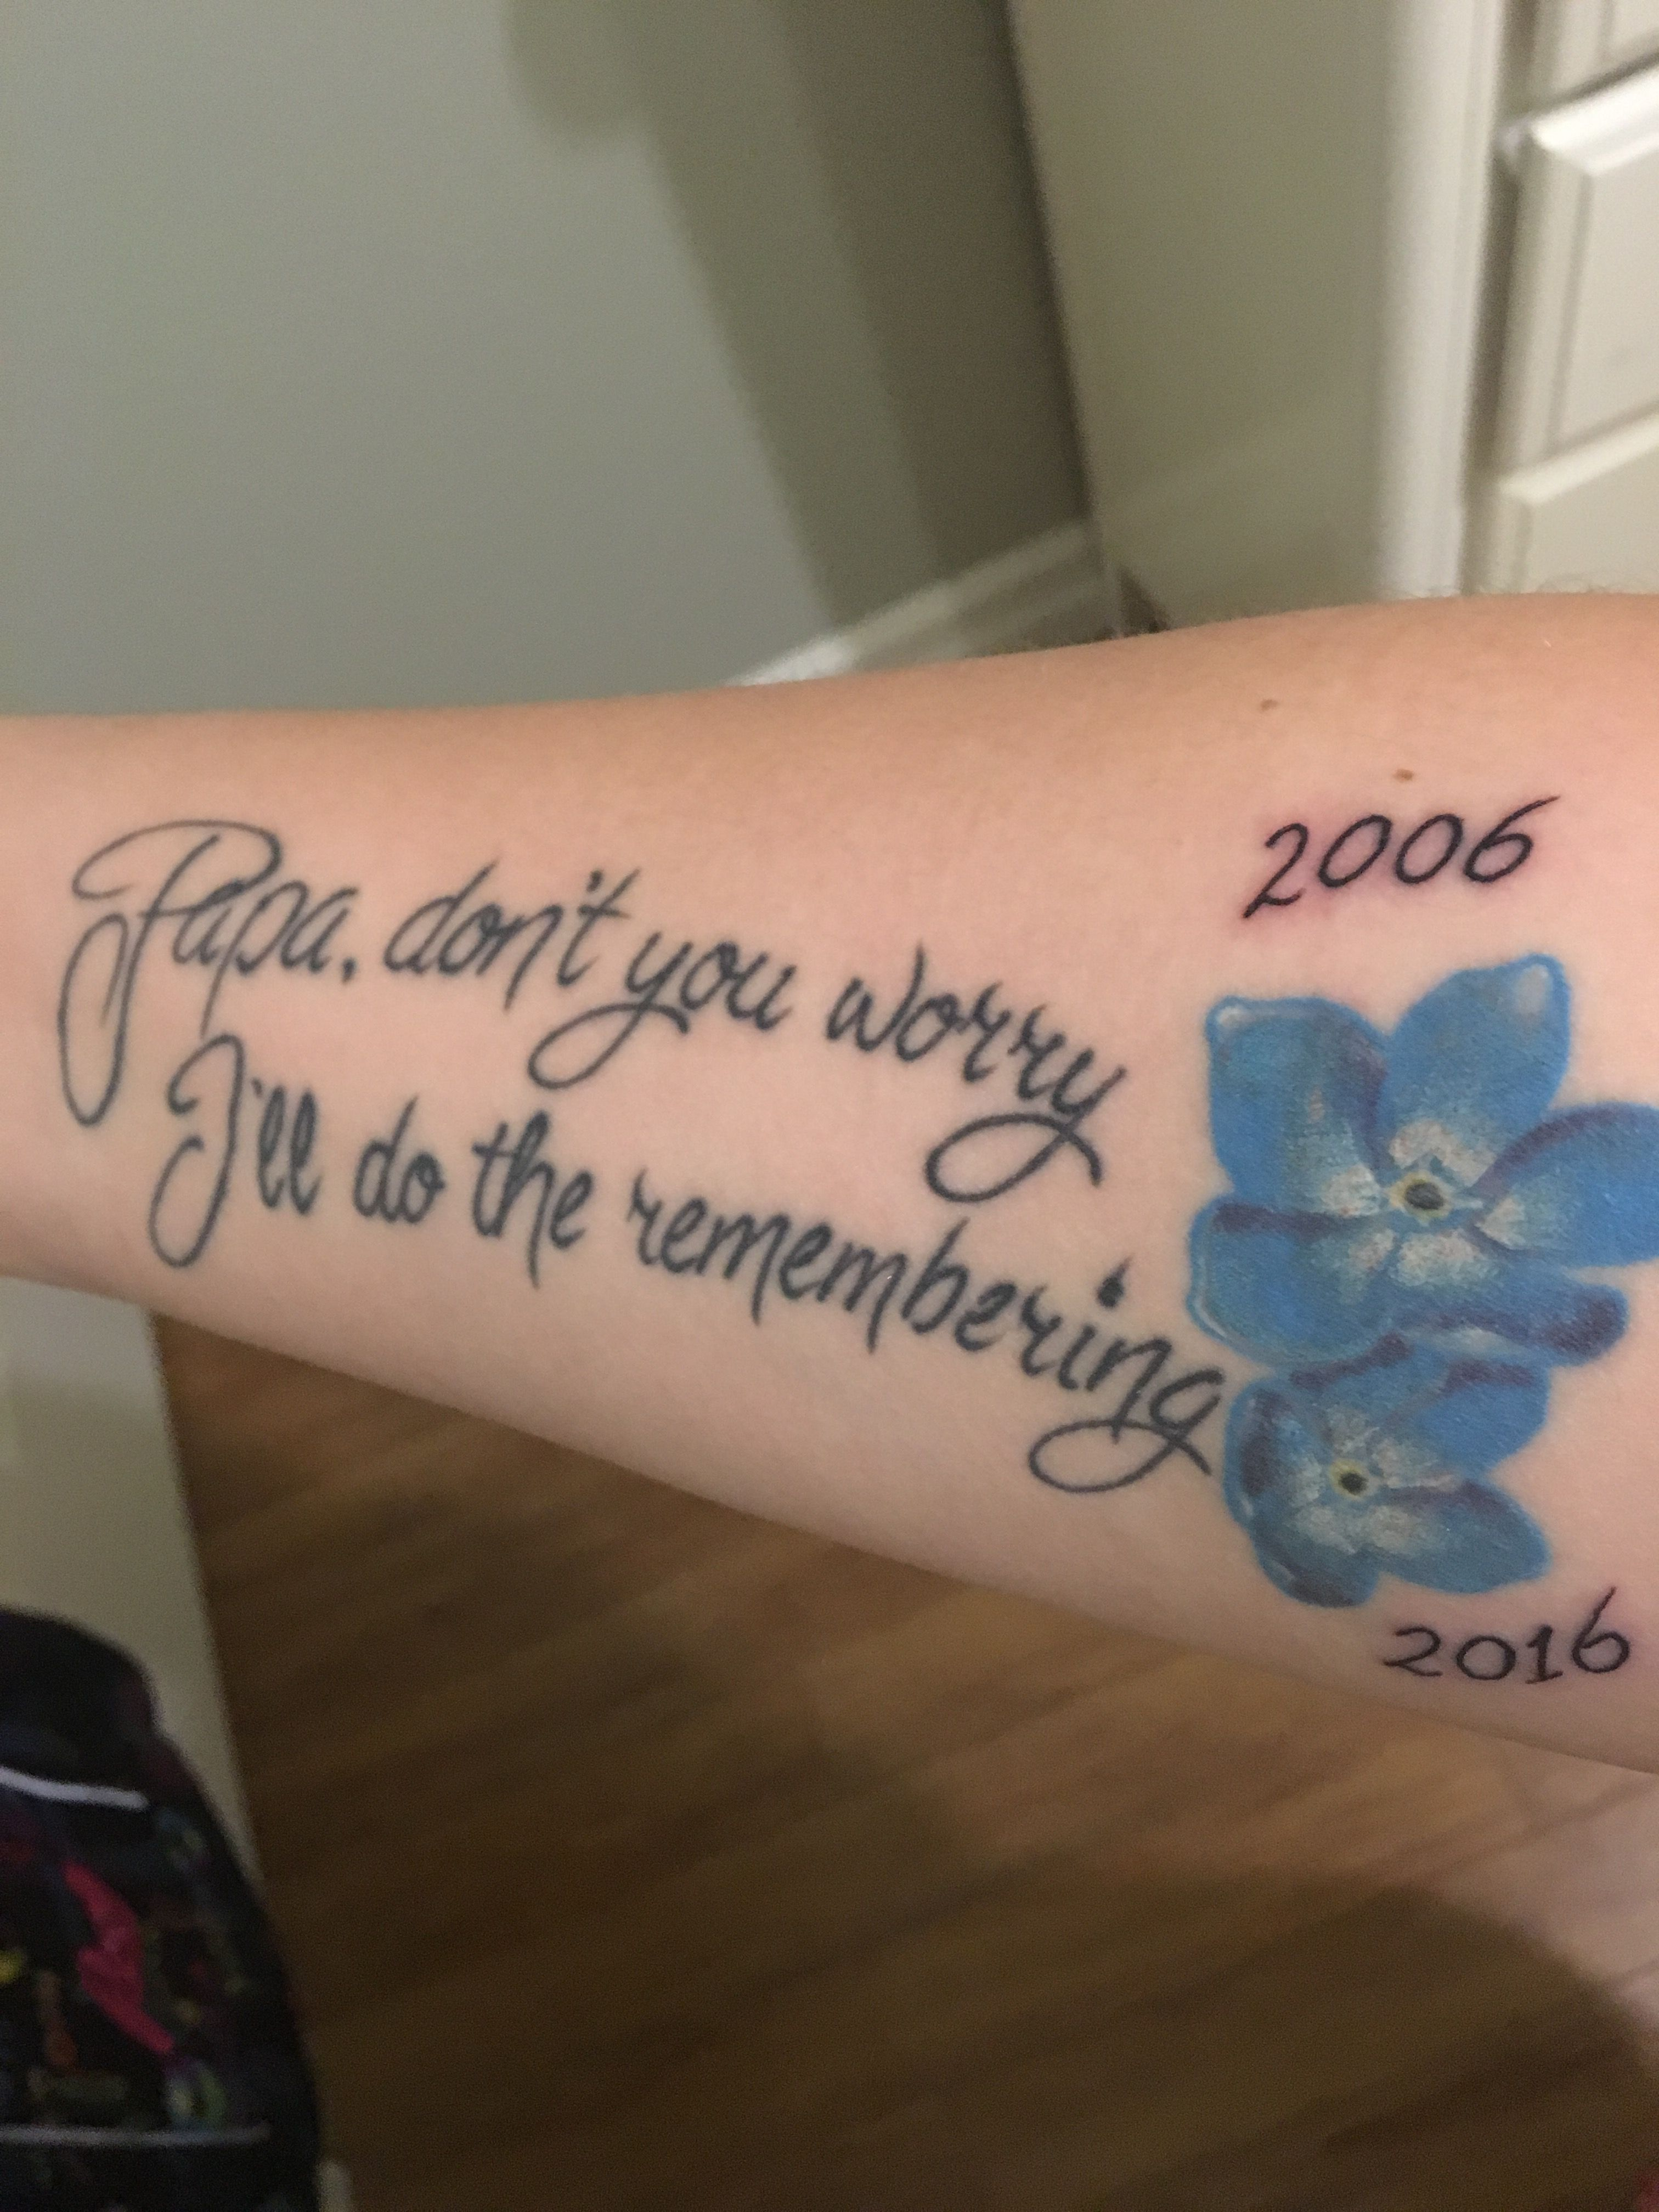 Touched up my memorial tattoo for my two amazing grandfathers who battled Alzheimer's disease  #AlzheimersTattoo #Memorial #ForgetMeNot #PapasGirl #grandfathertattoo Touched up my memorial tattoo for my two amazing grandfathers who battled Alzheimer's disease  #AlzheimersTattoo #Memorial #ForgetMeNot #PapasGirl #grandfathertattoo Touched up my memorial tattoo for my two amazing grandfathers who battled Alzheimer's disease  #AlzheimersTattoo #Memorial #ForgetMeNot #PapasGirl #grandfathertattoo To #grandfathertattoo